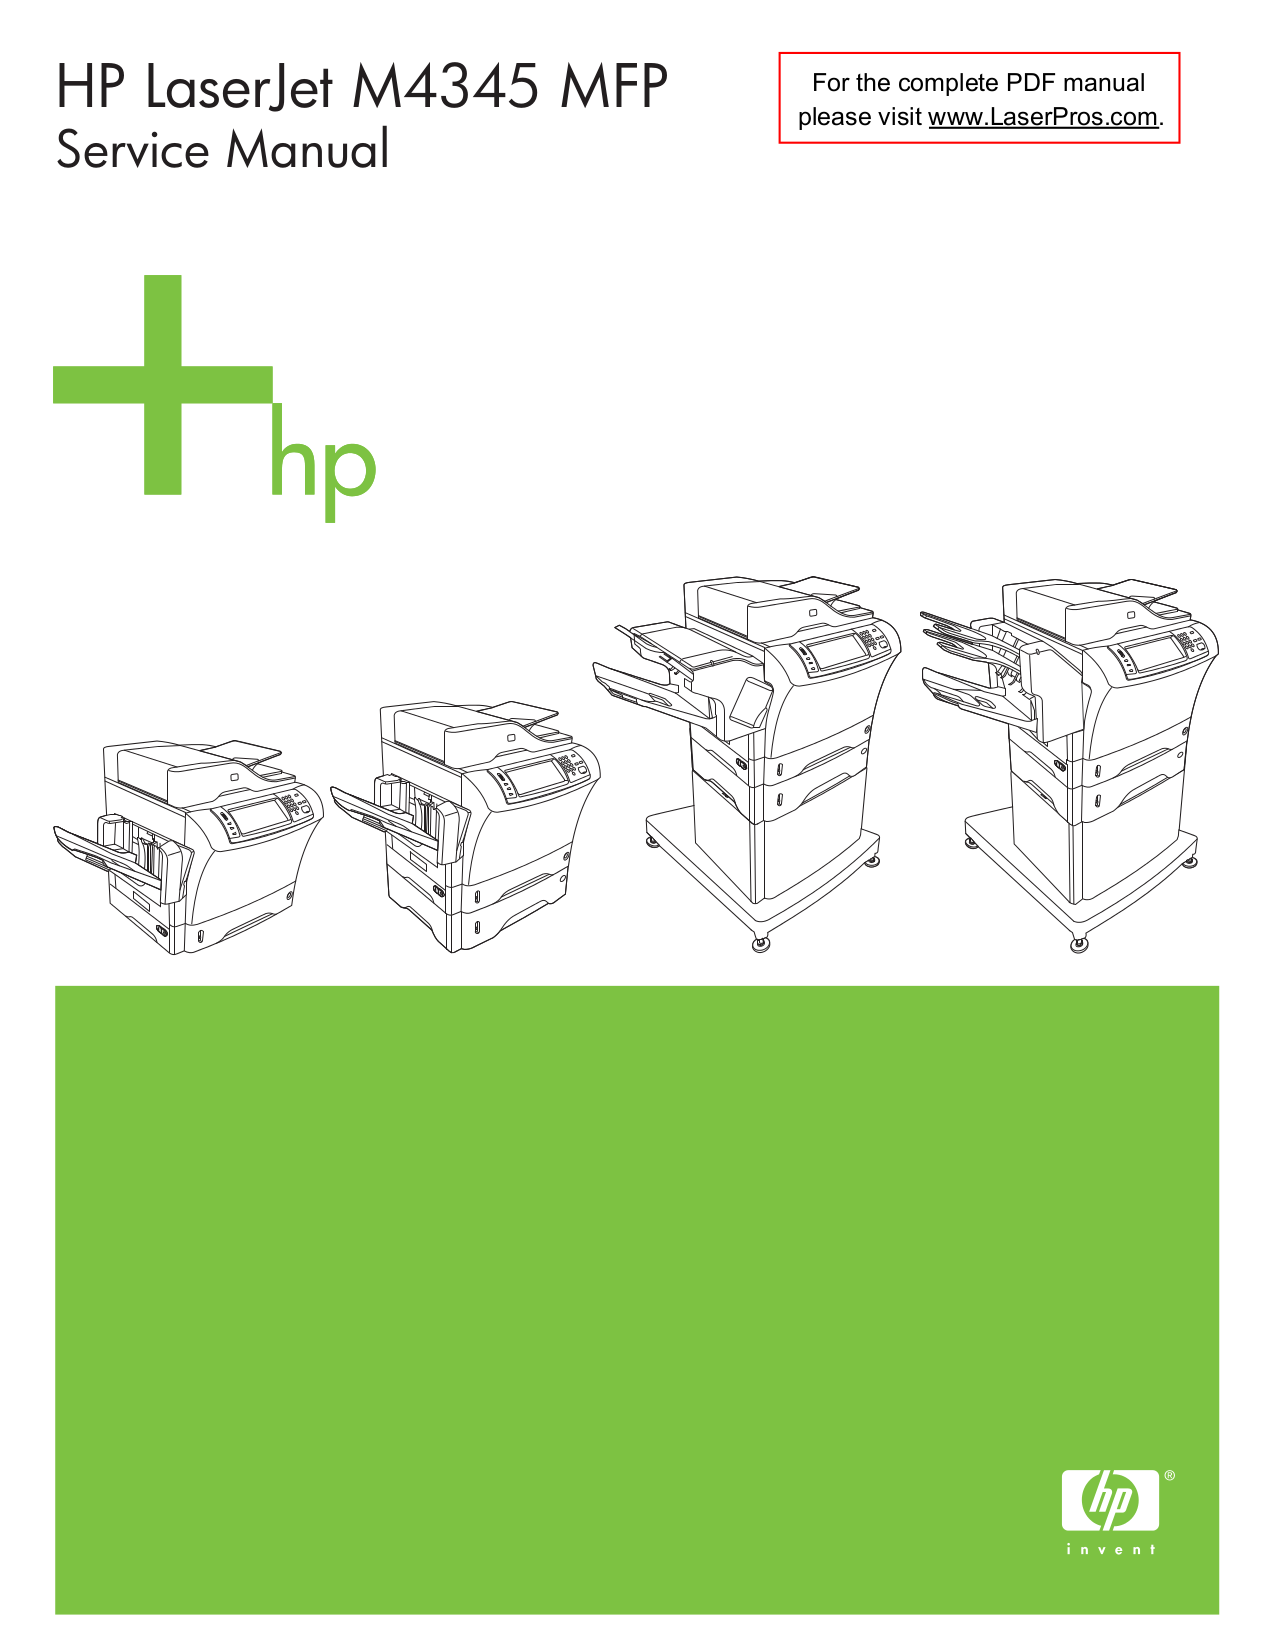 download free pdf for hp laserjet color laserjet m4345 multifunction rh umlib com hp laserjet 4345 mfp service manual pdf hp laserjet 4345 mfp service manual pdf